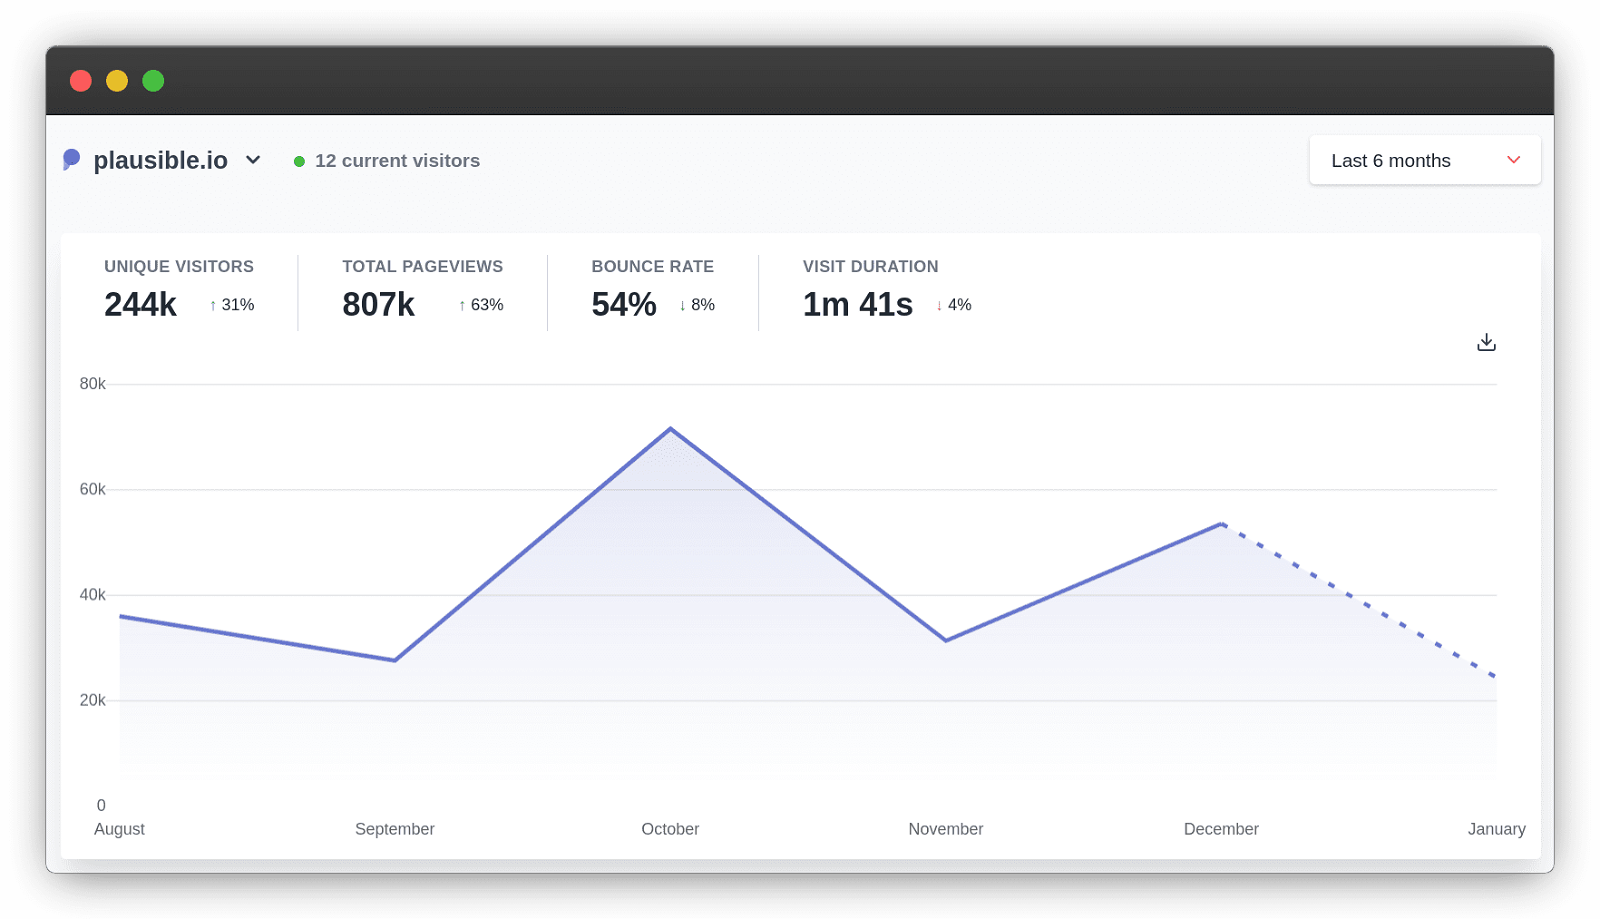 Plausible: A lightweight web analytics tool